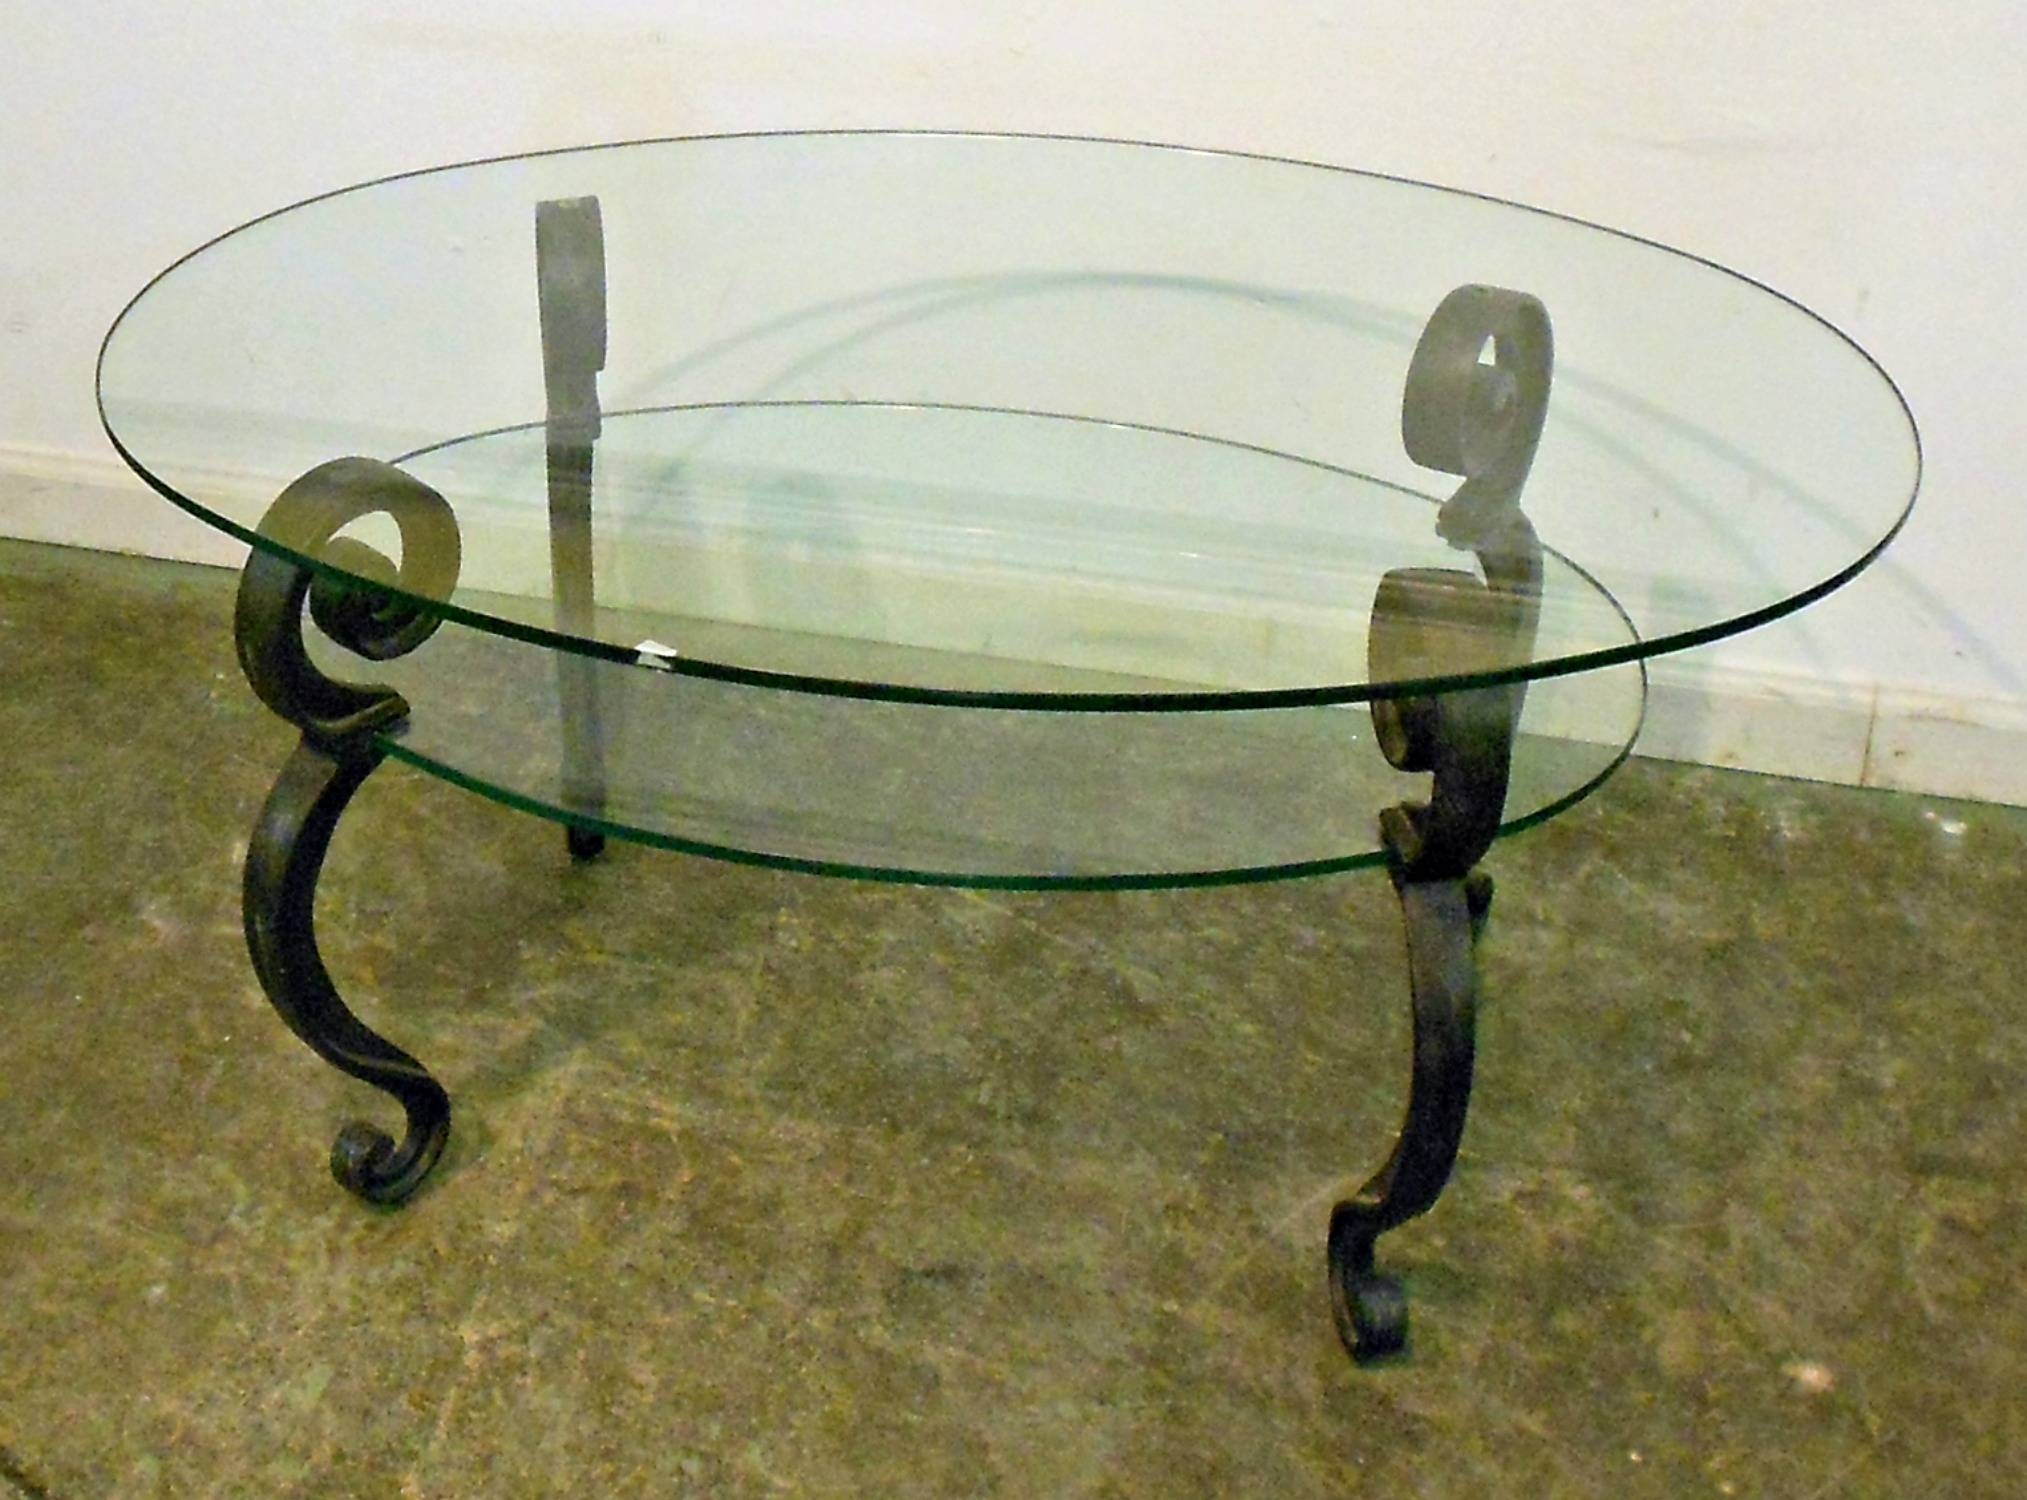 Living Room : Wondeful Glass Top Coffee Table Furniture Ideas With intended for Oval Shaped Glass Coffee Tables (Image 20 of 30)